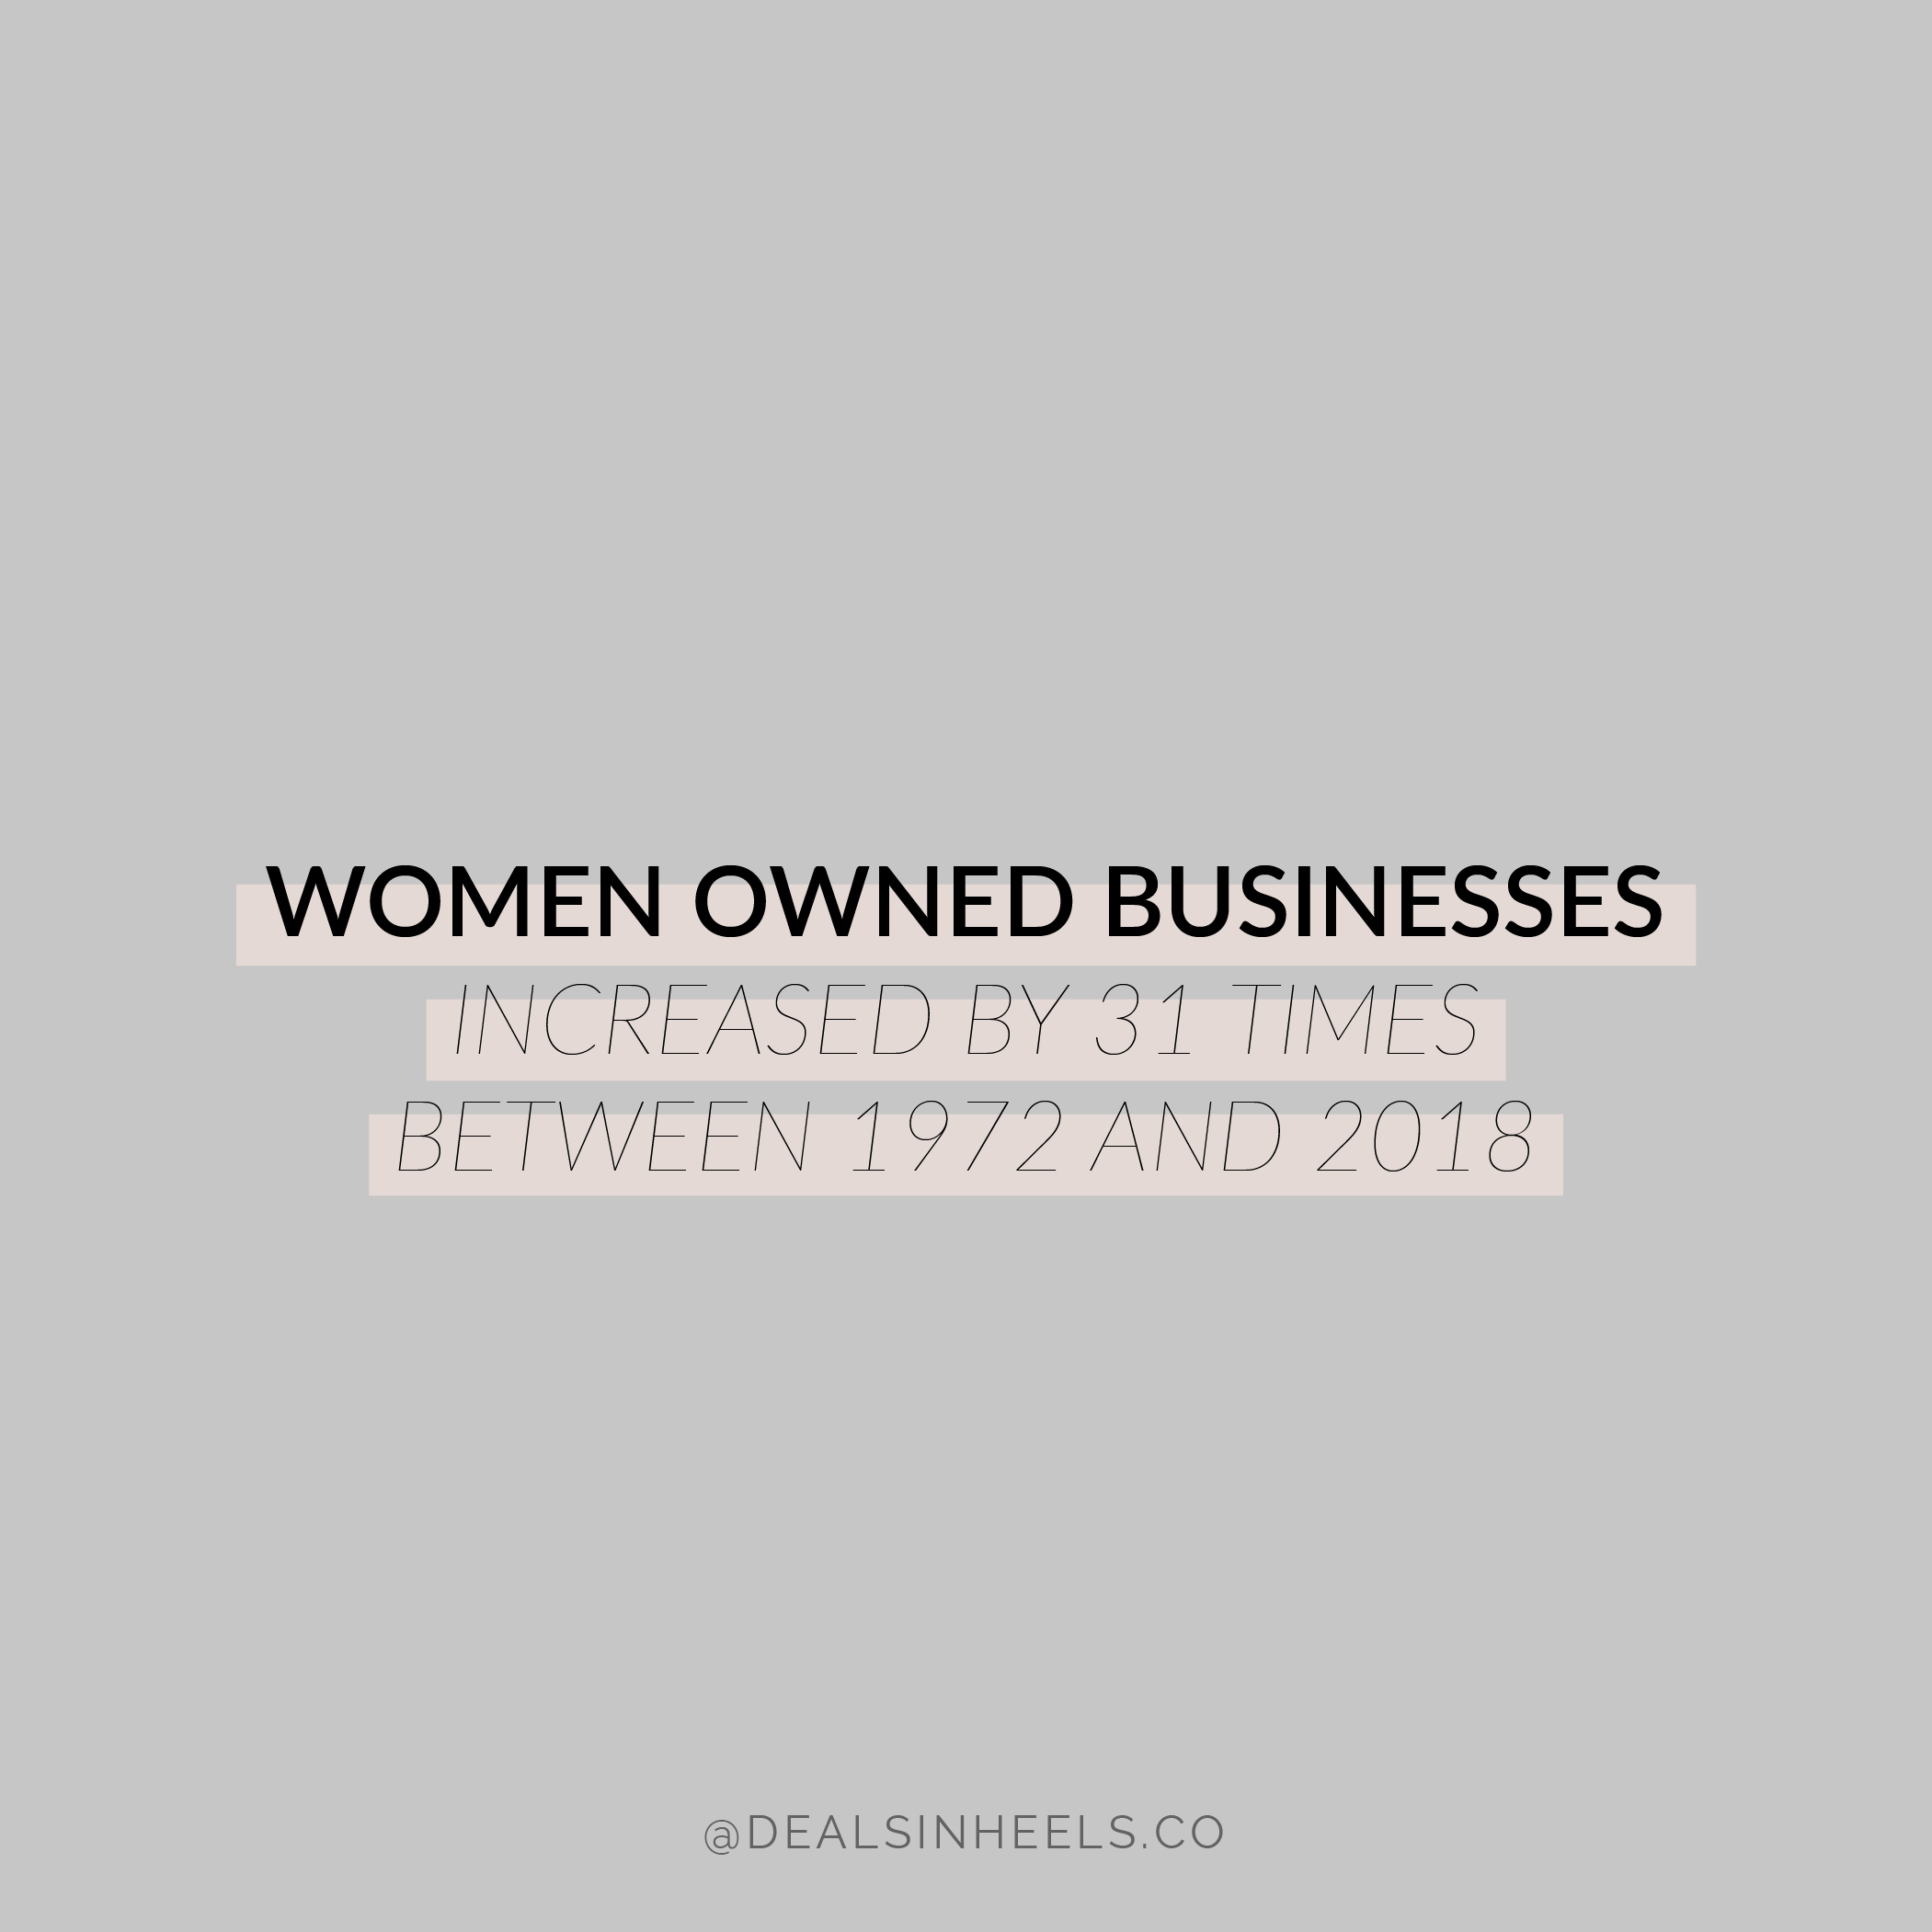 DEALS IN HEELS WOMEN OWNED BUSINESSES